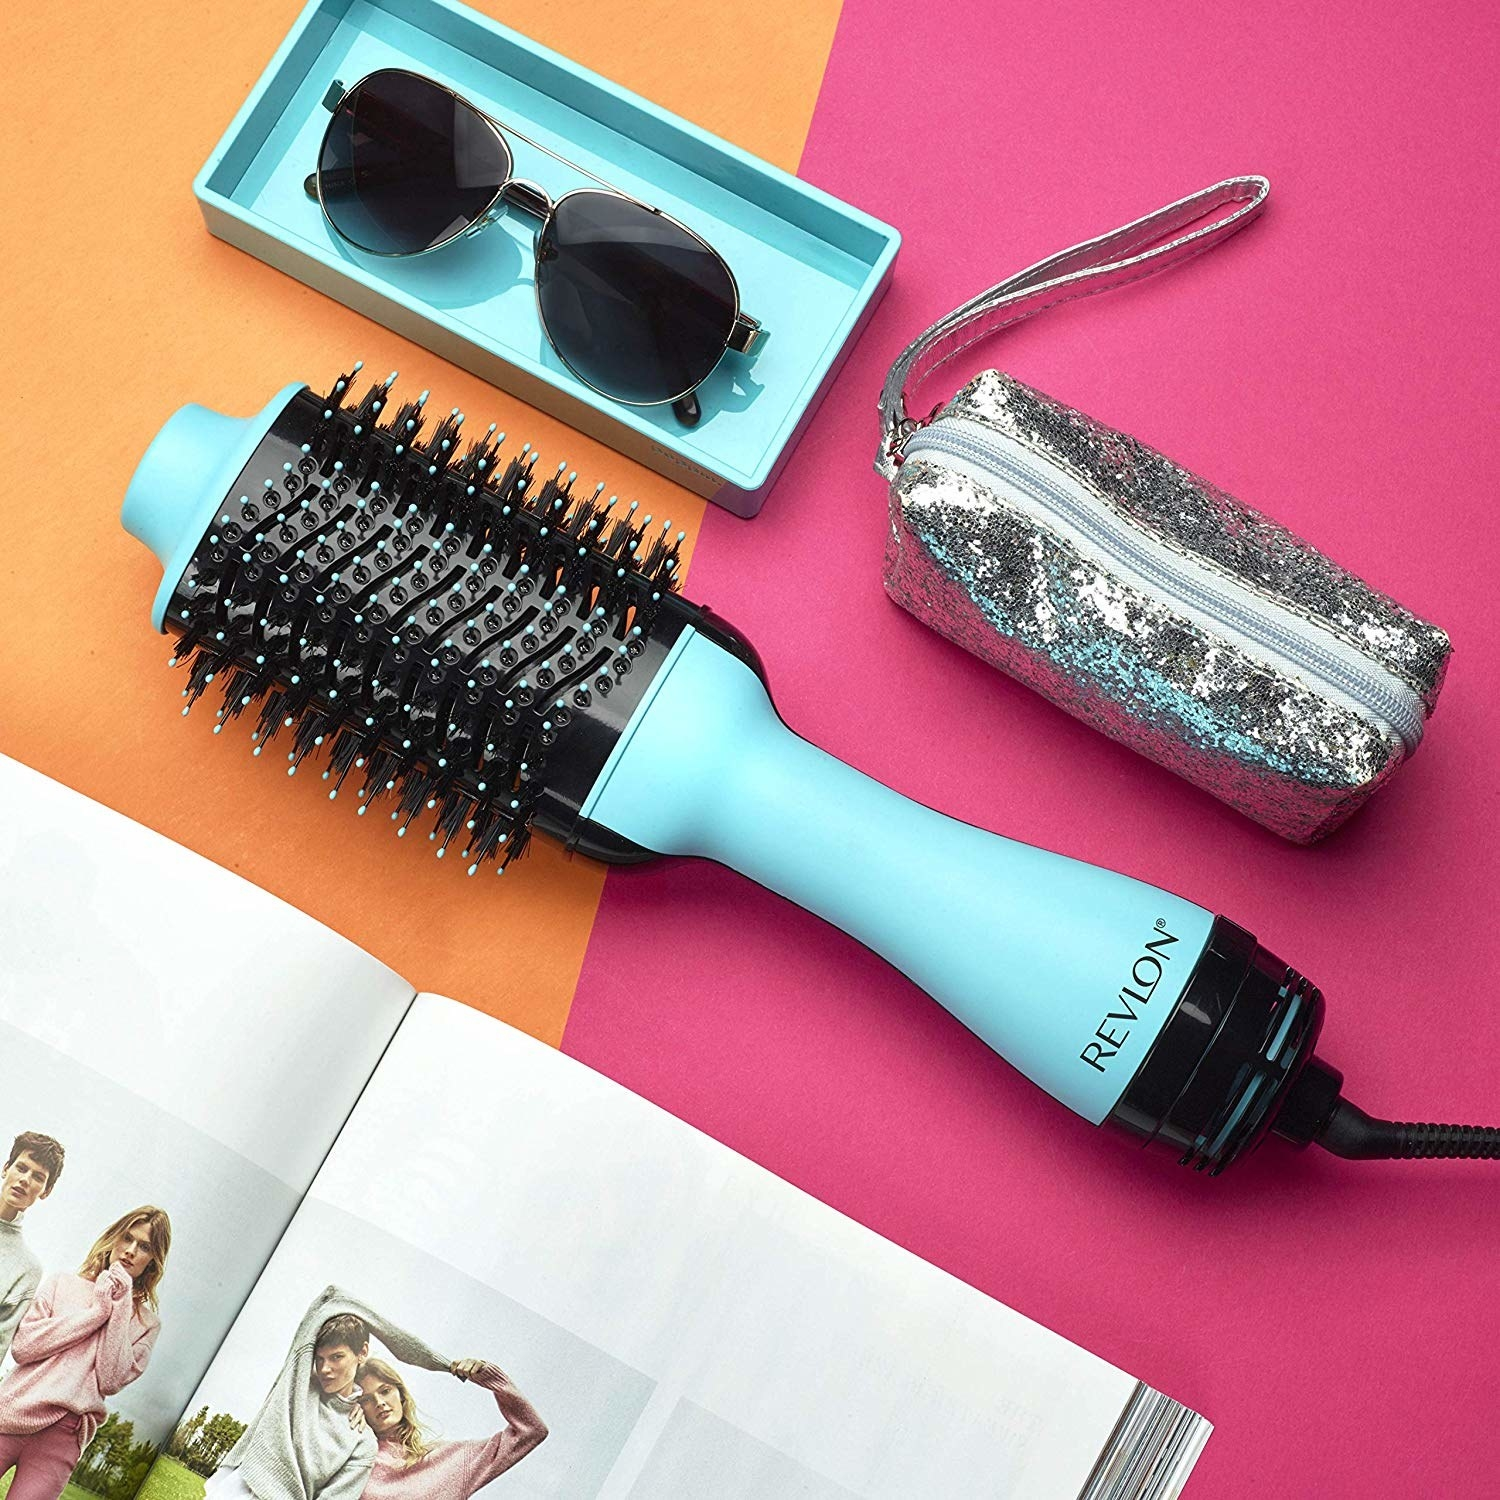 A large electronic hair brush with a pair of sunglasses and a cosmetic bag next to it